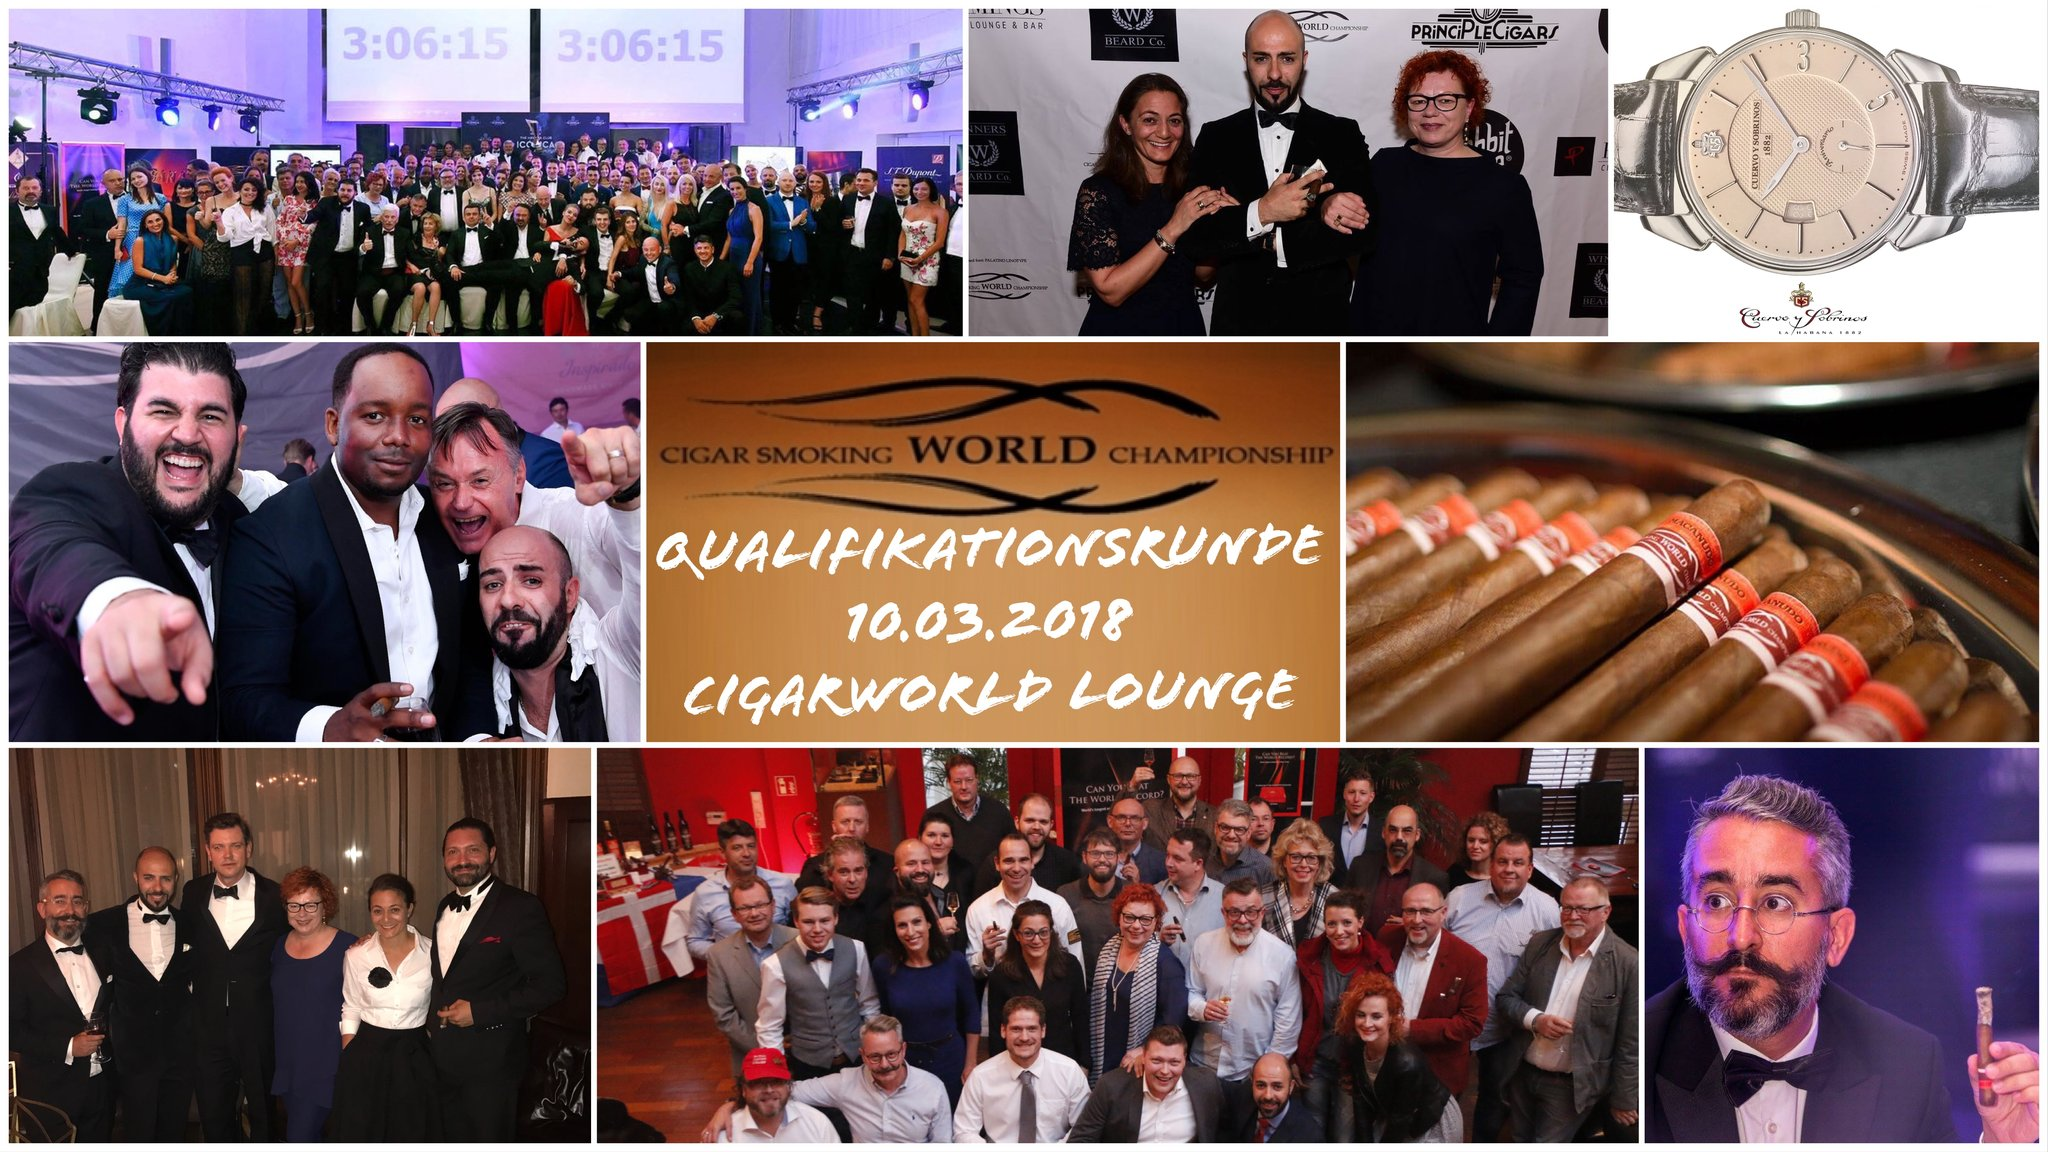 CSWC Cigarworld Event cigar smoking world championship